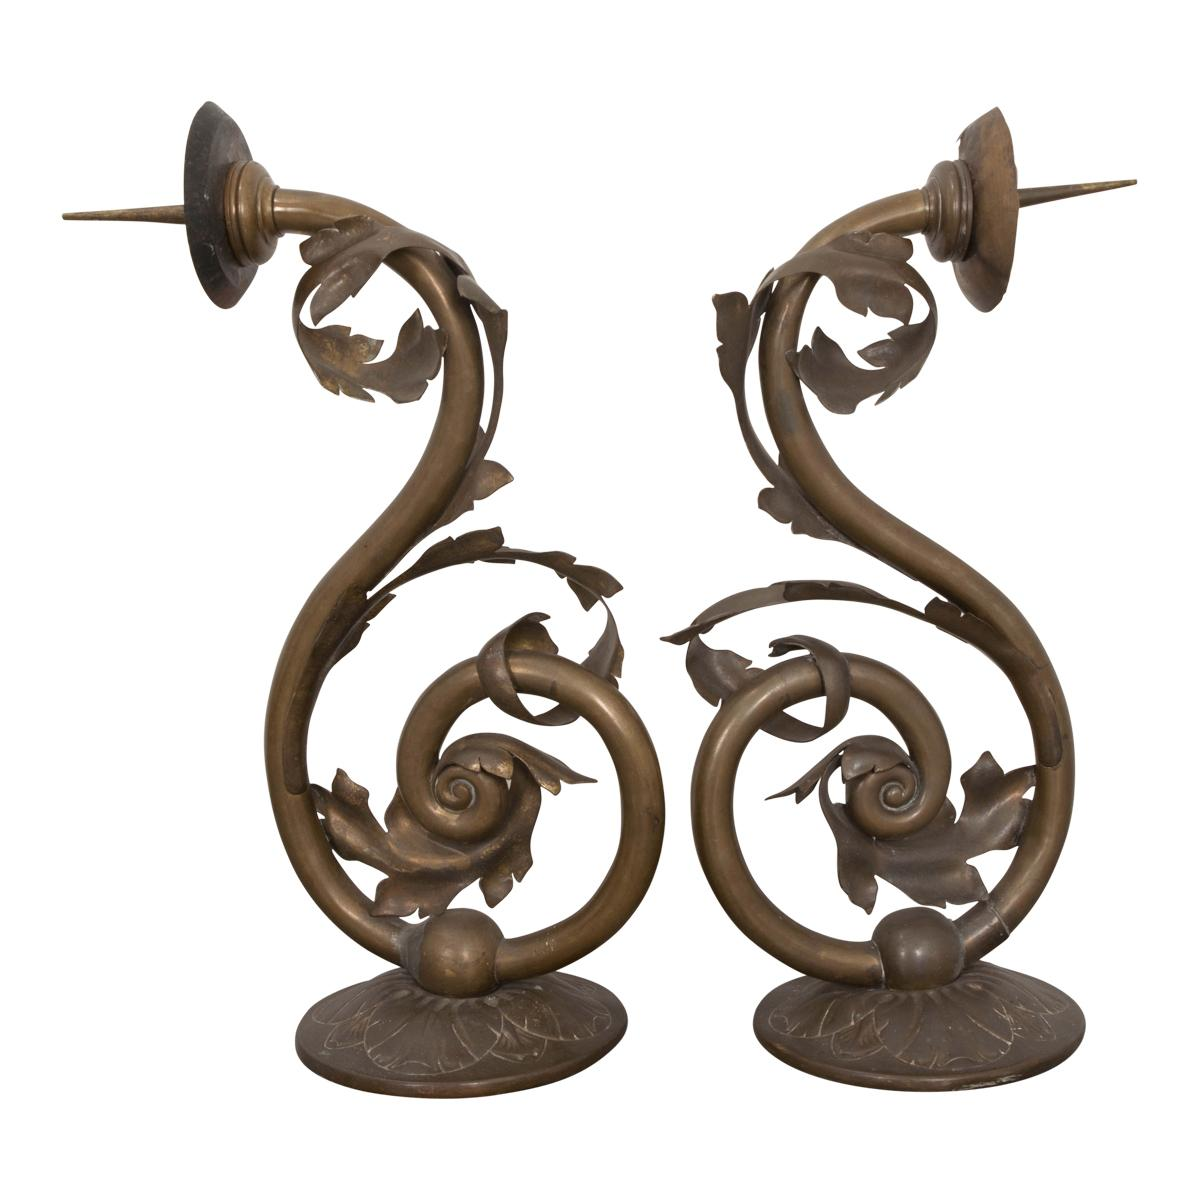 Pair of Early 19th Century Dutch Brass Wall Sconces